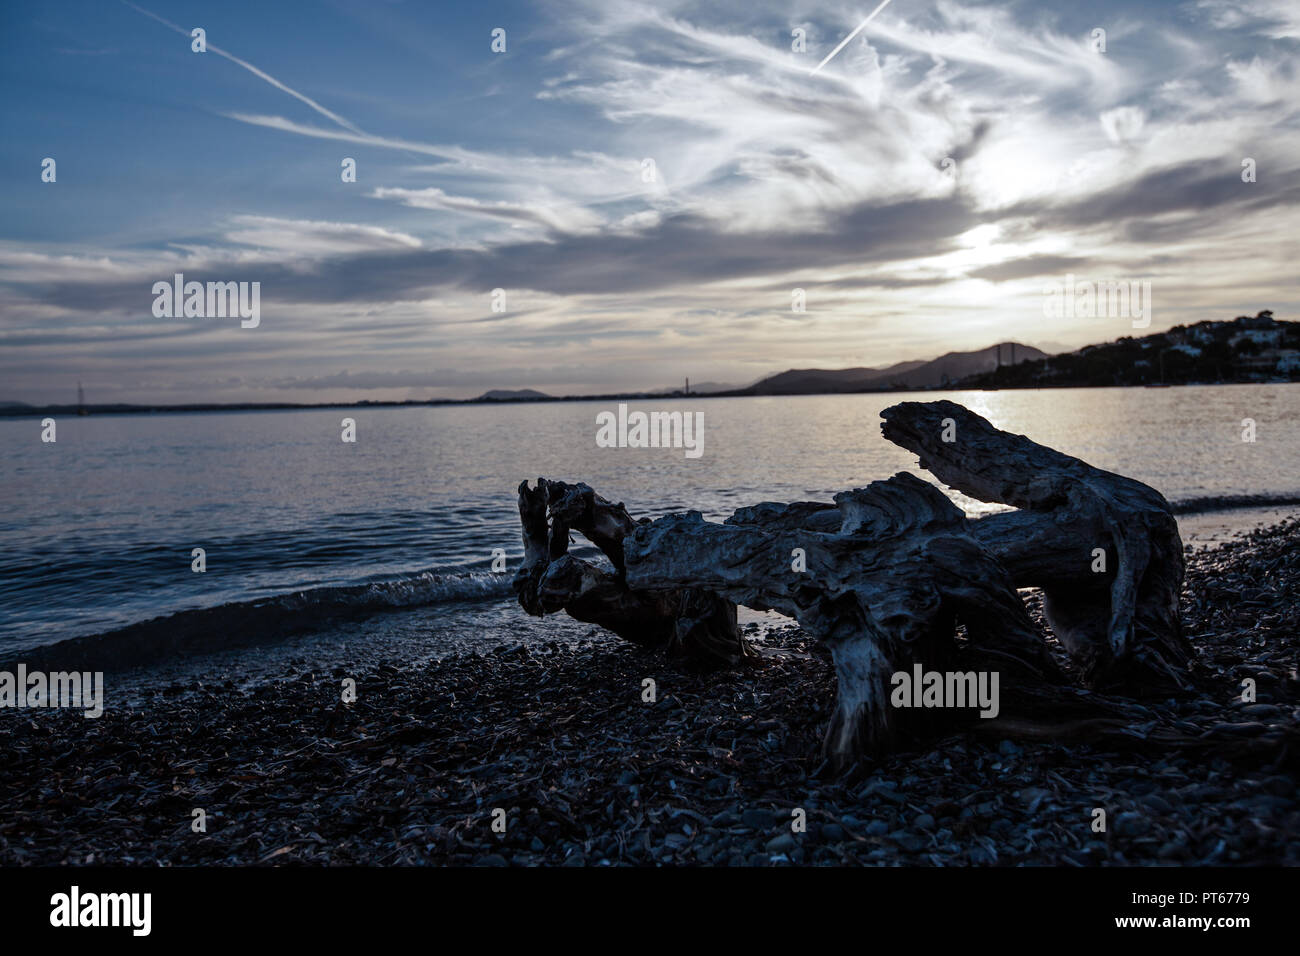 Europe Spain North Mallorca , sunset in Alcanada, remains of a dead tree in the sea - Stock Image